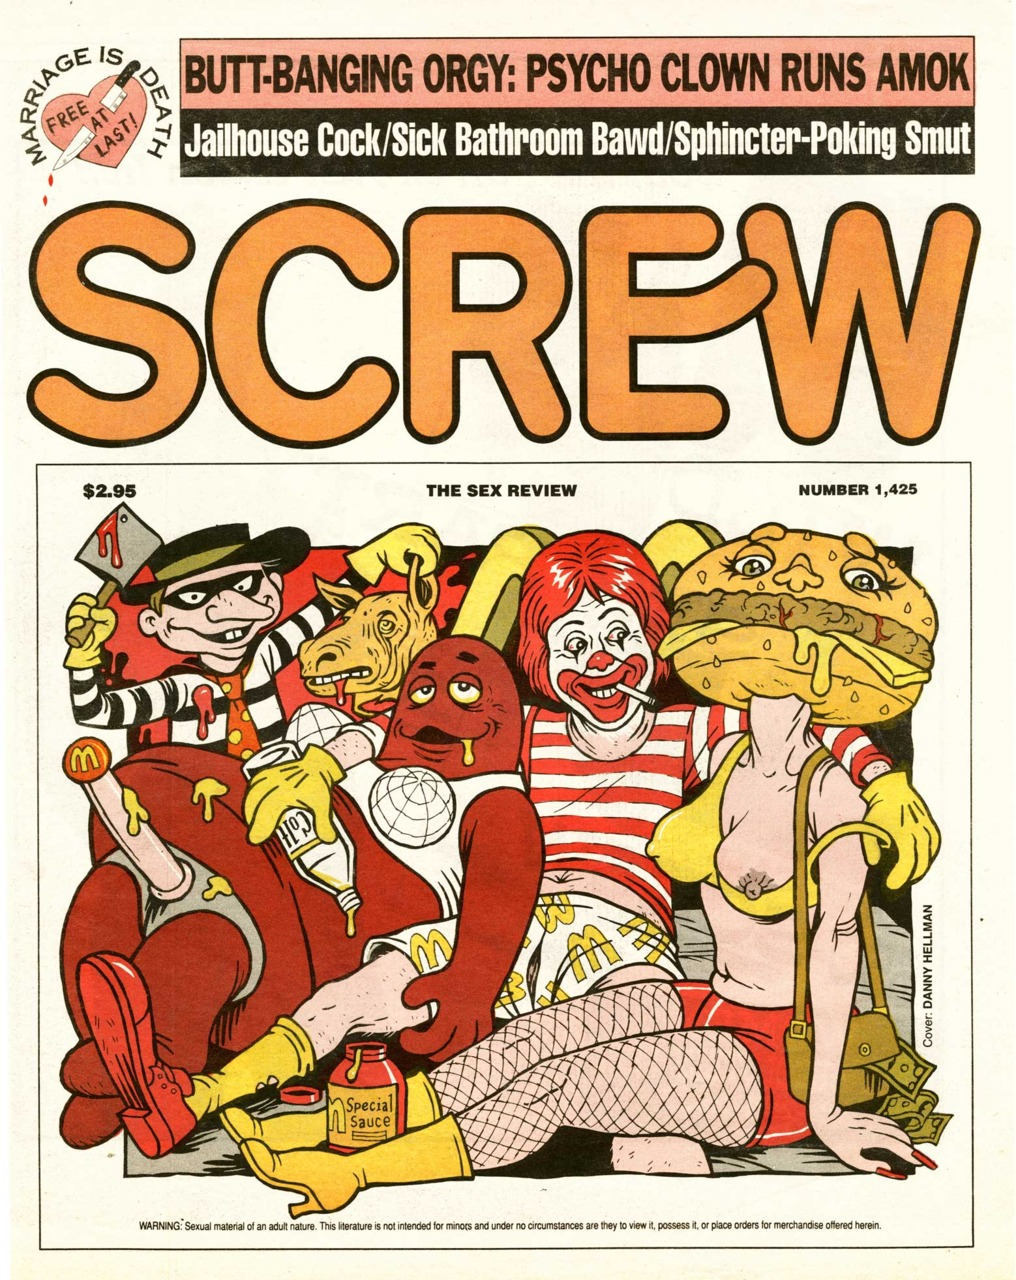 Al Goldstein, Publisher of 'Screw' Magazine Dies at 77: tumblr_lsbat0RST51qag2f8o1_1280.jpg